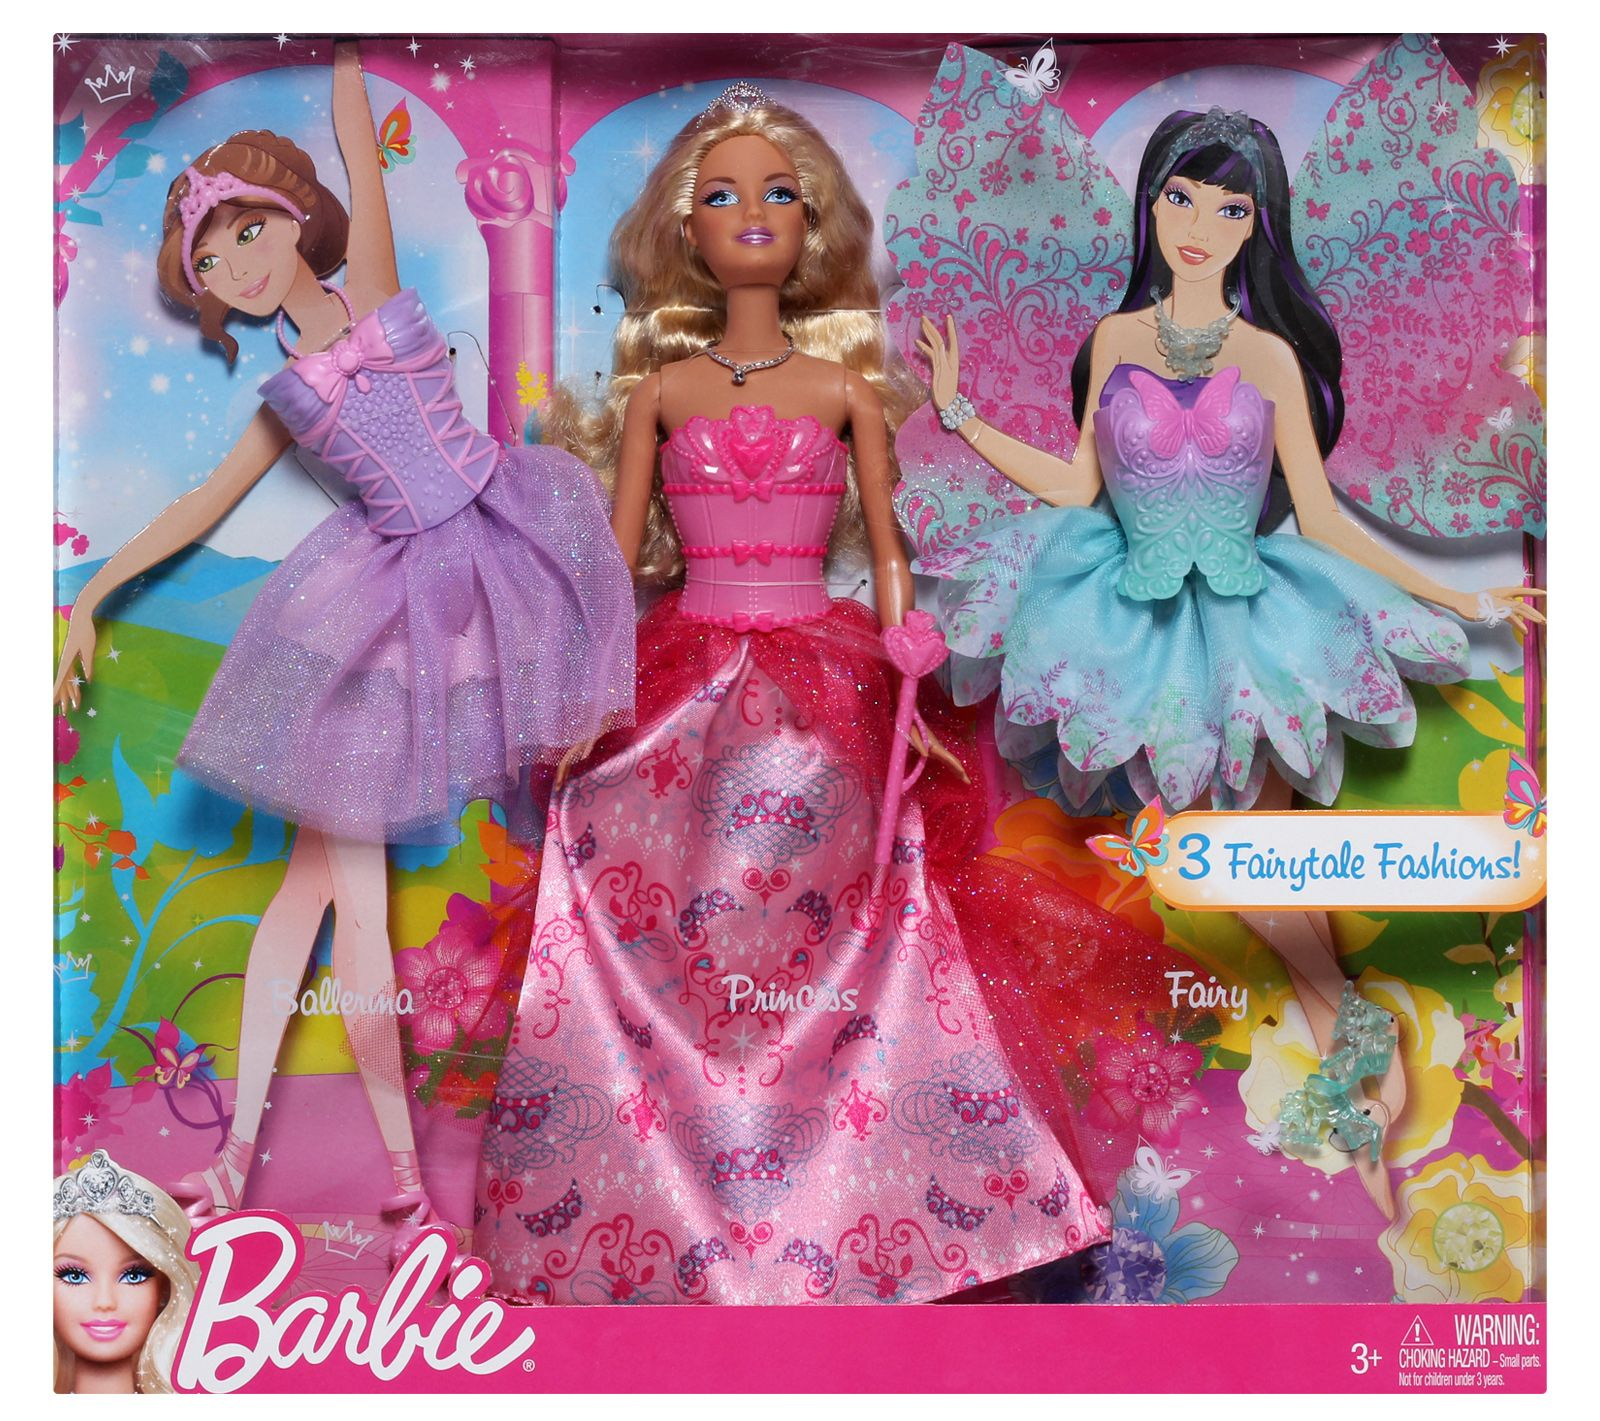 Fashion Fairy Tale Toy Barbie Games Fashion Fairytale